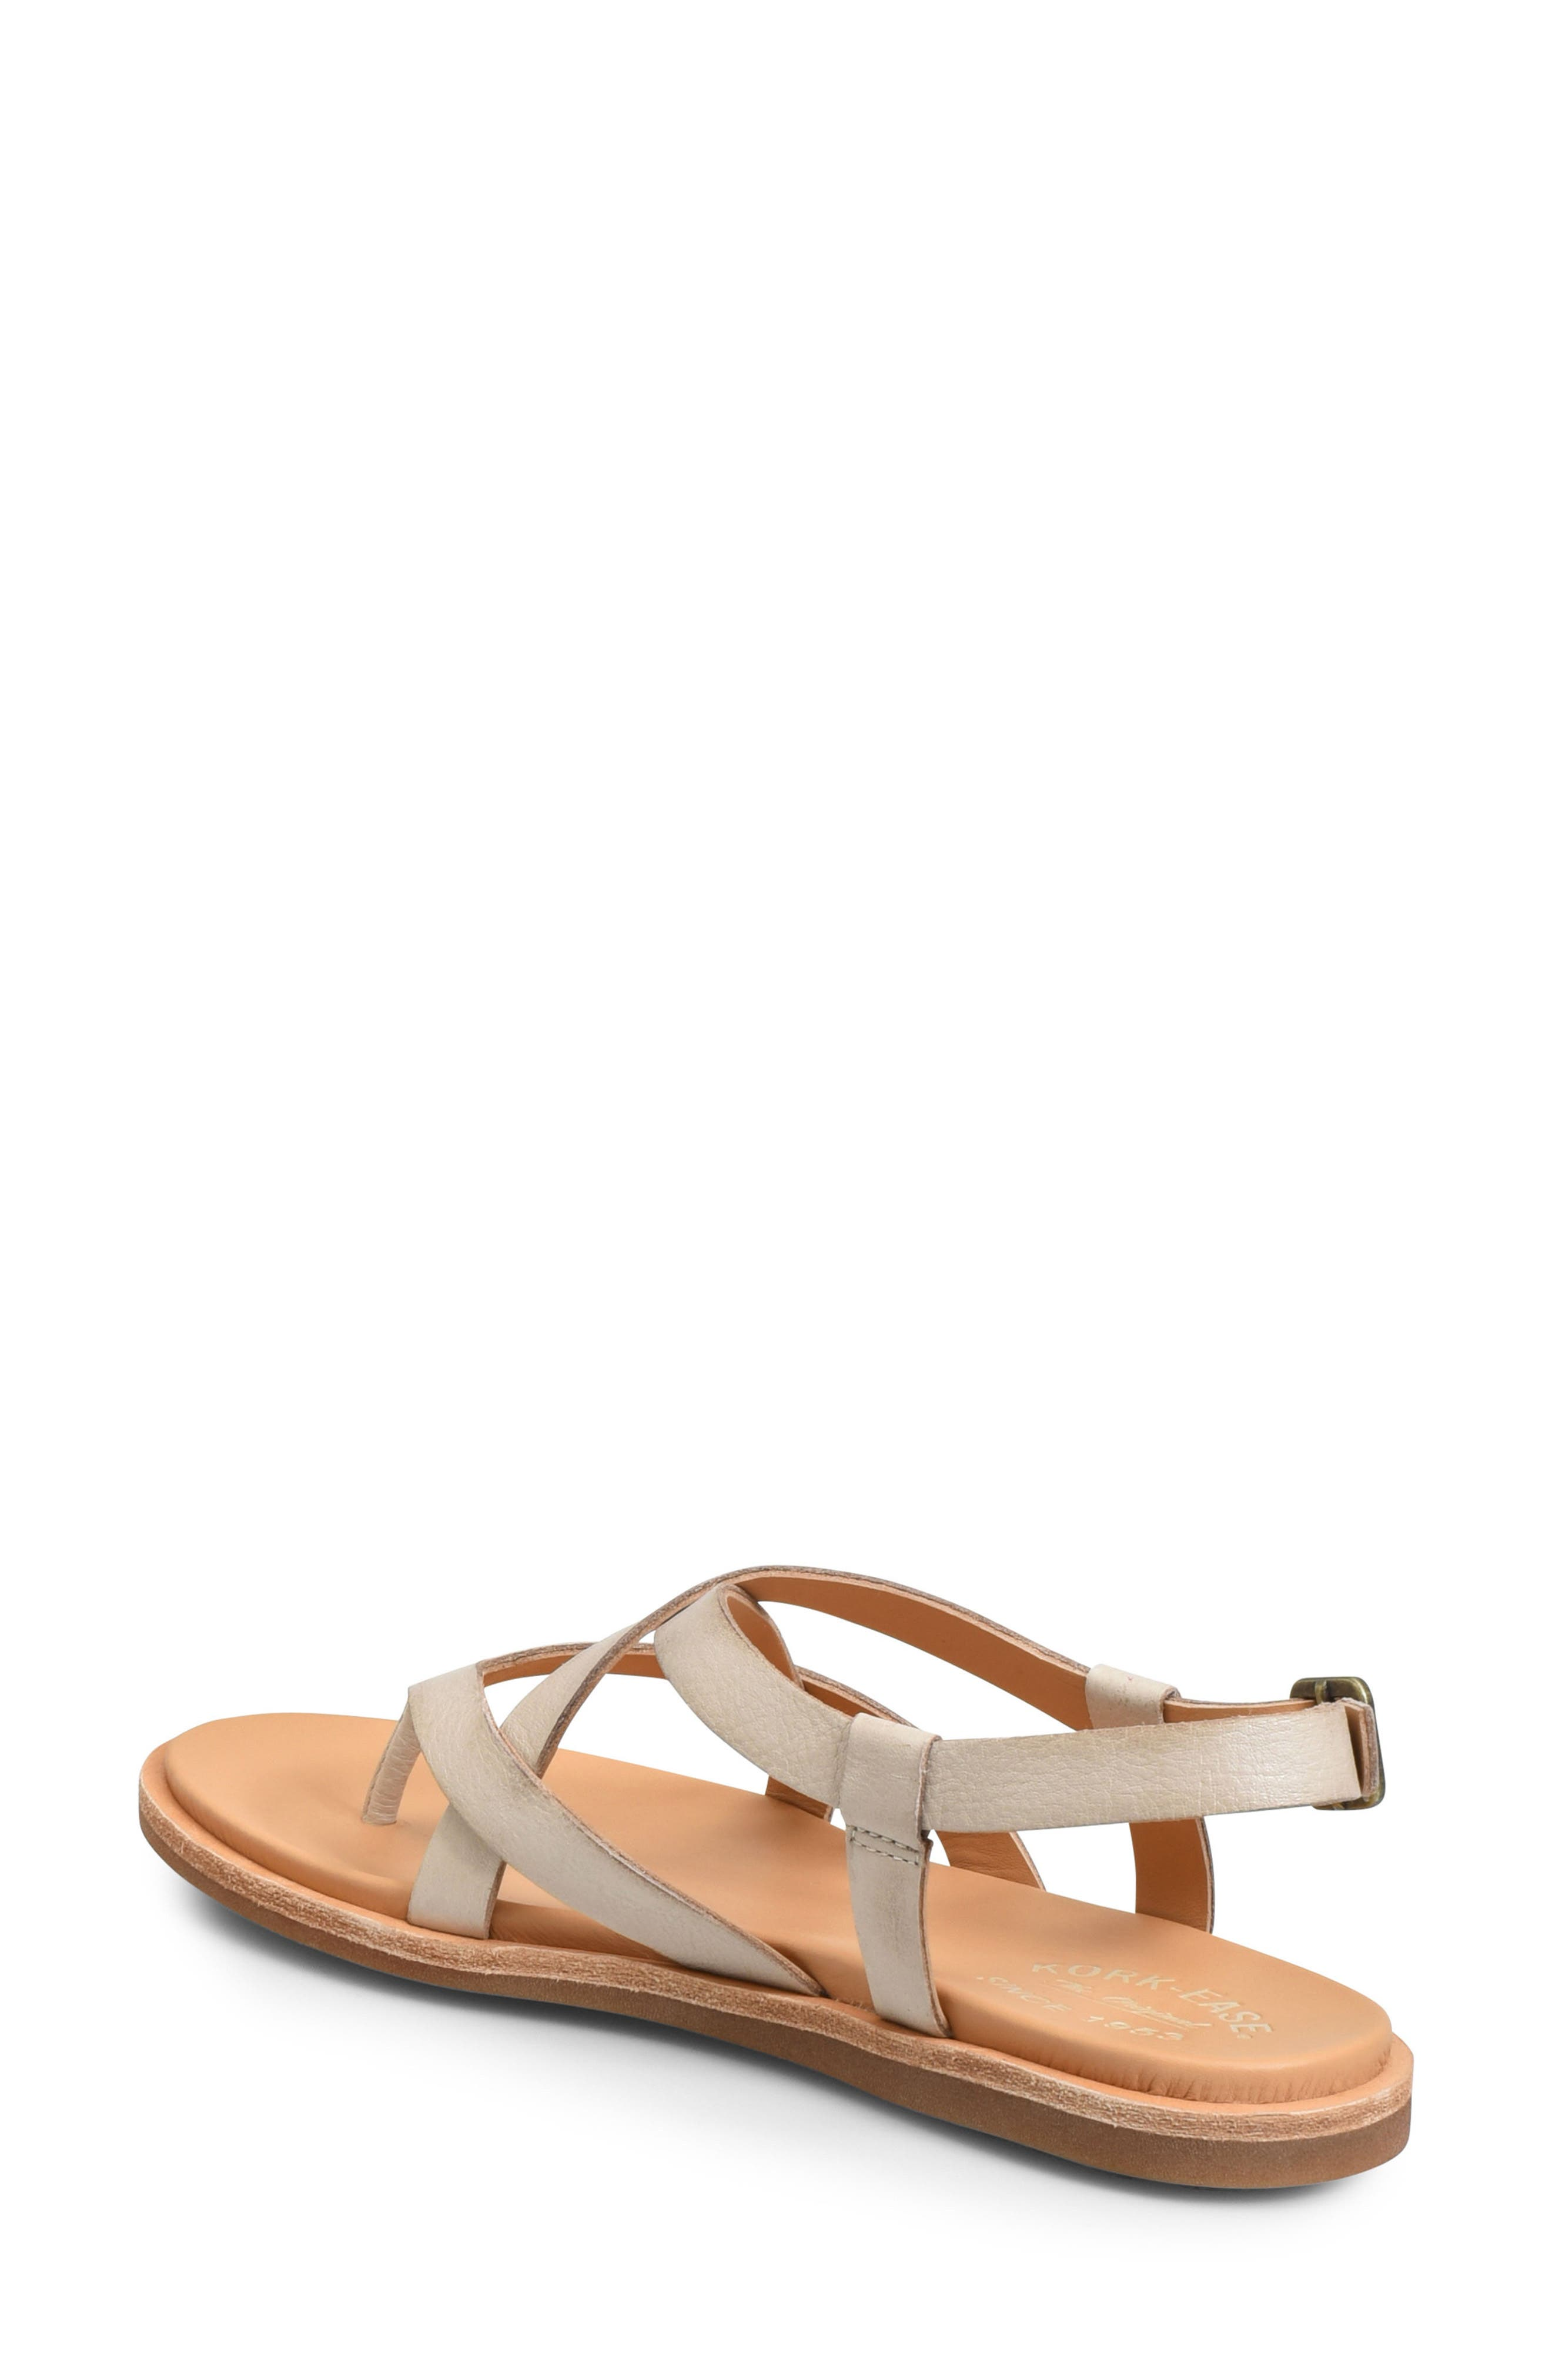 KORK-EASE<SUP>®</SUP>, Yarbrough Sandal, Alternate thumbnail 2, color, LIGHT GREY LEATHER